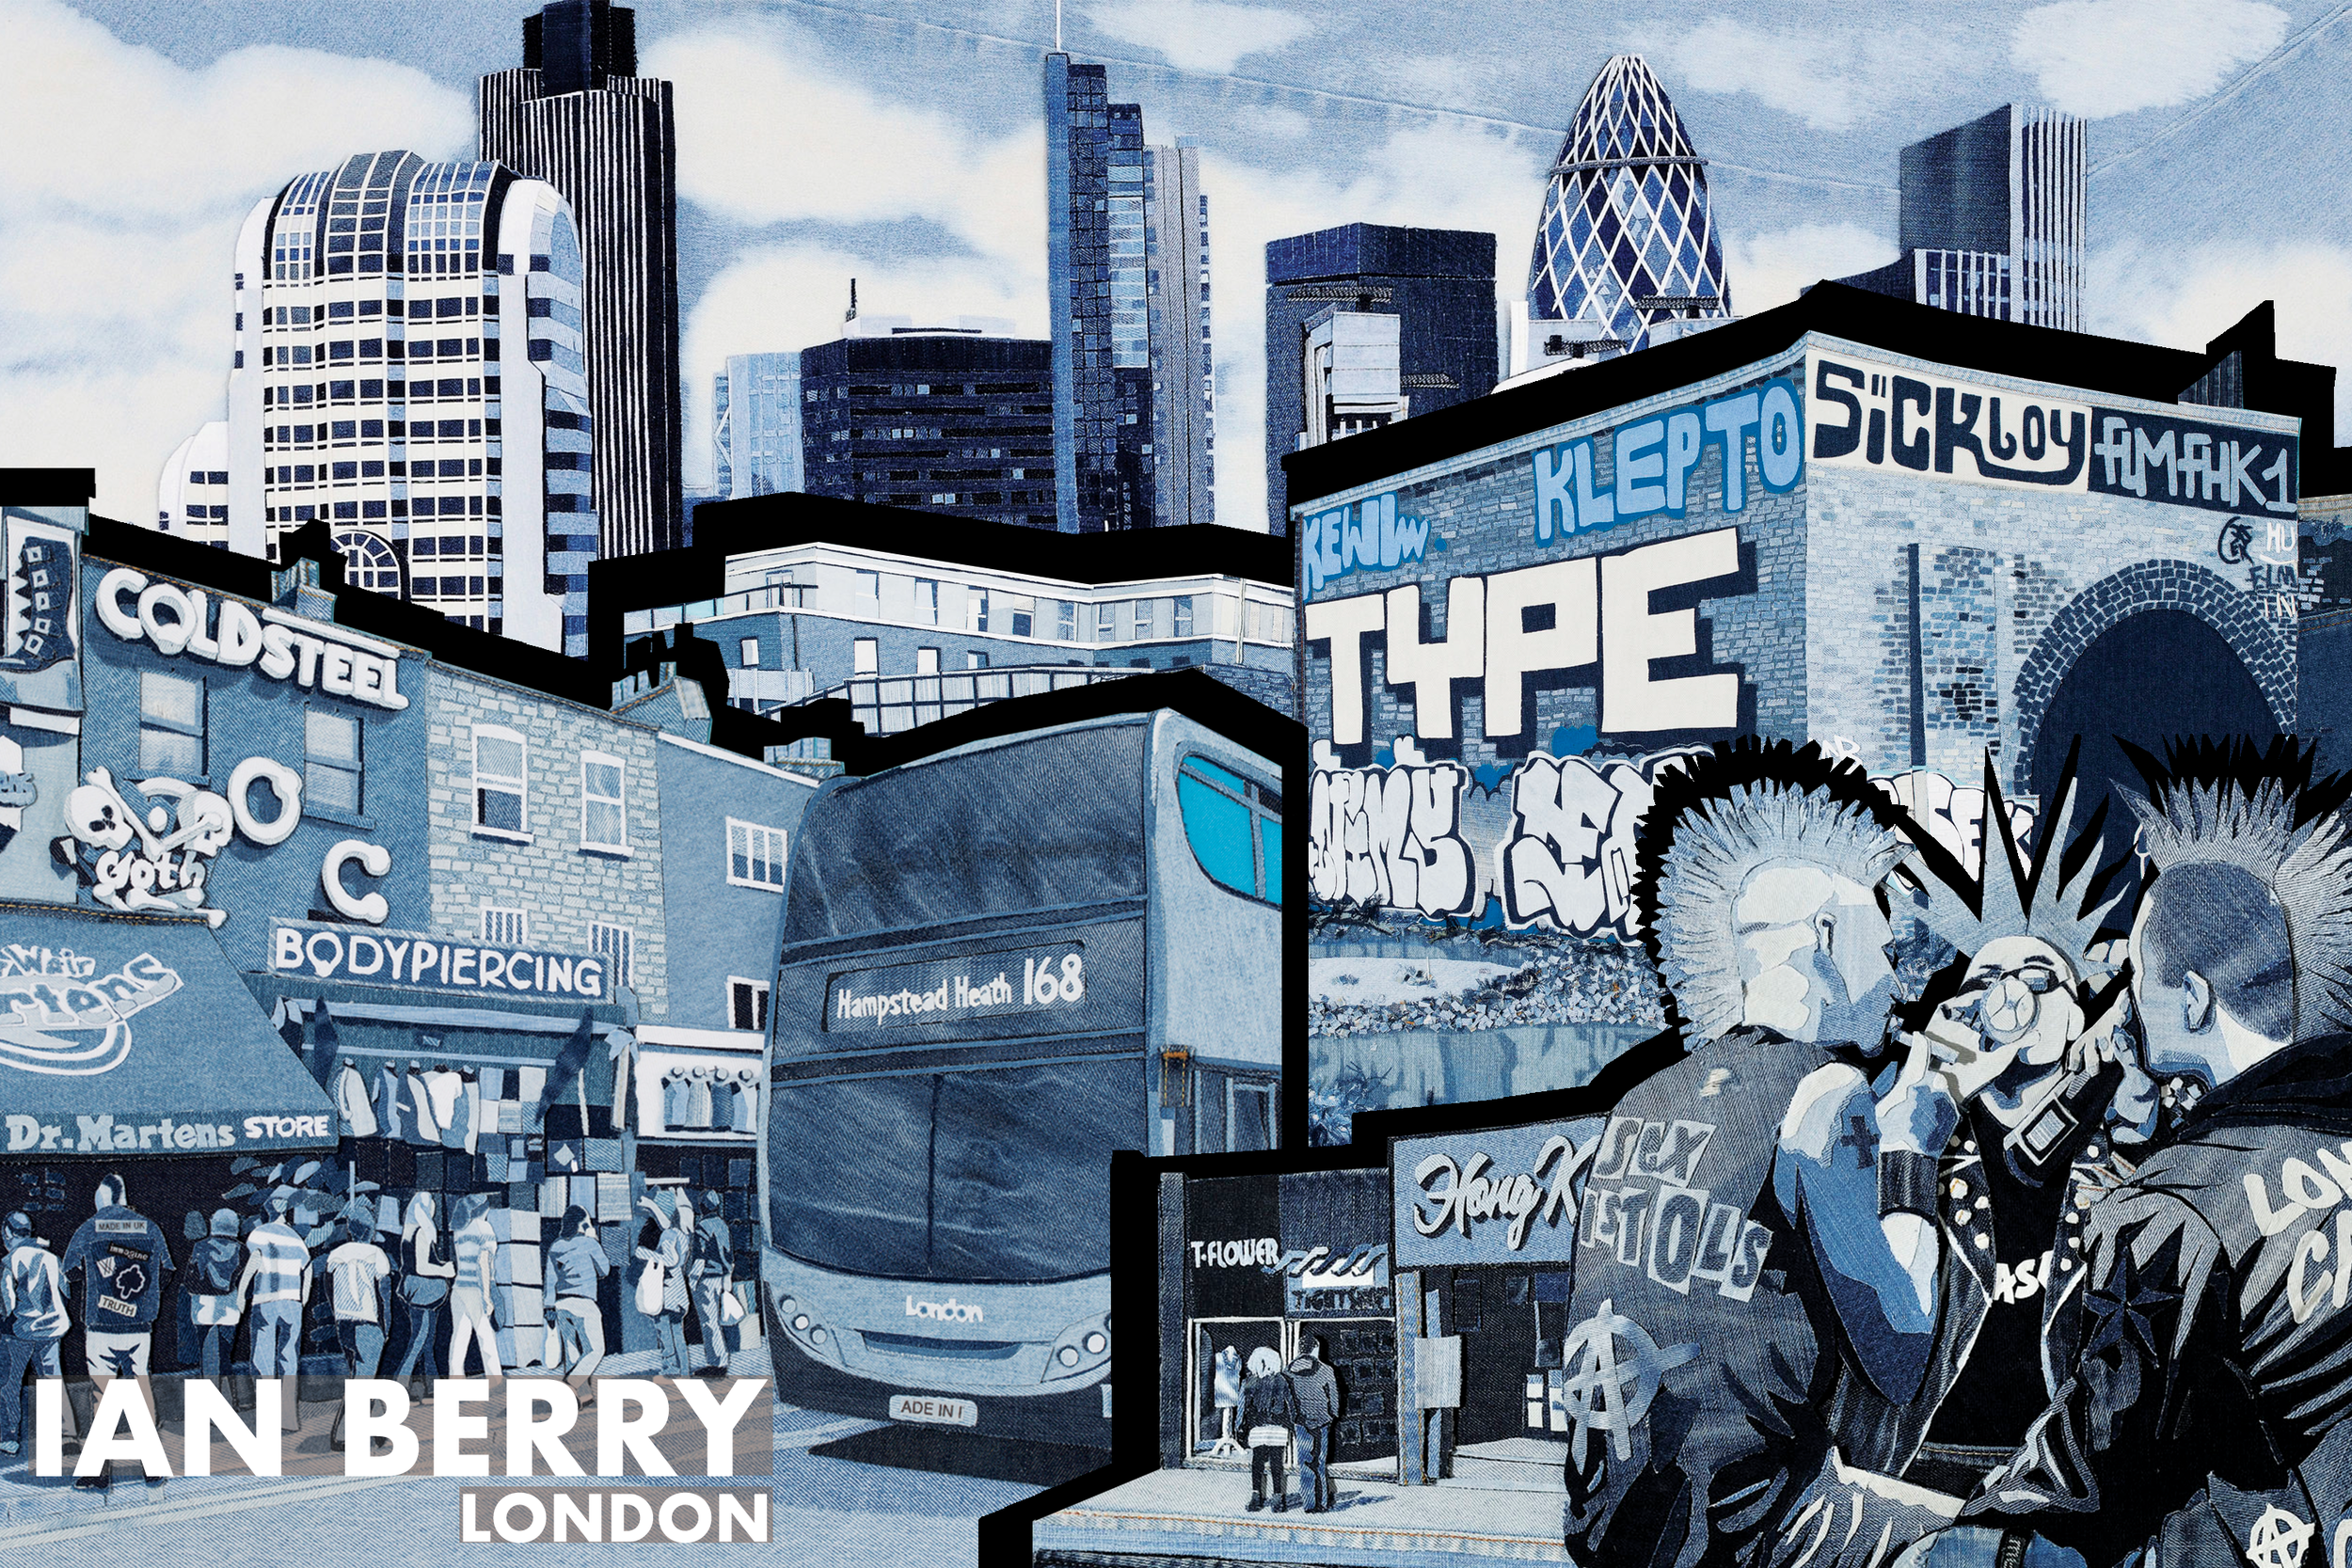 Collage of various images from Ian Berry's Denim London series - http://www.ianberry.org/london/